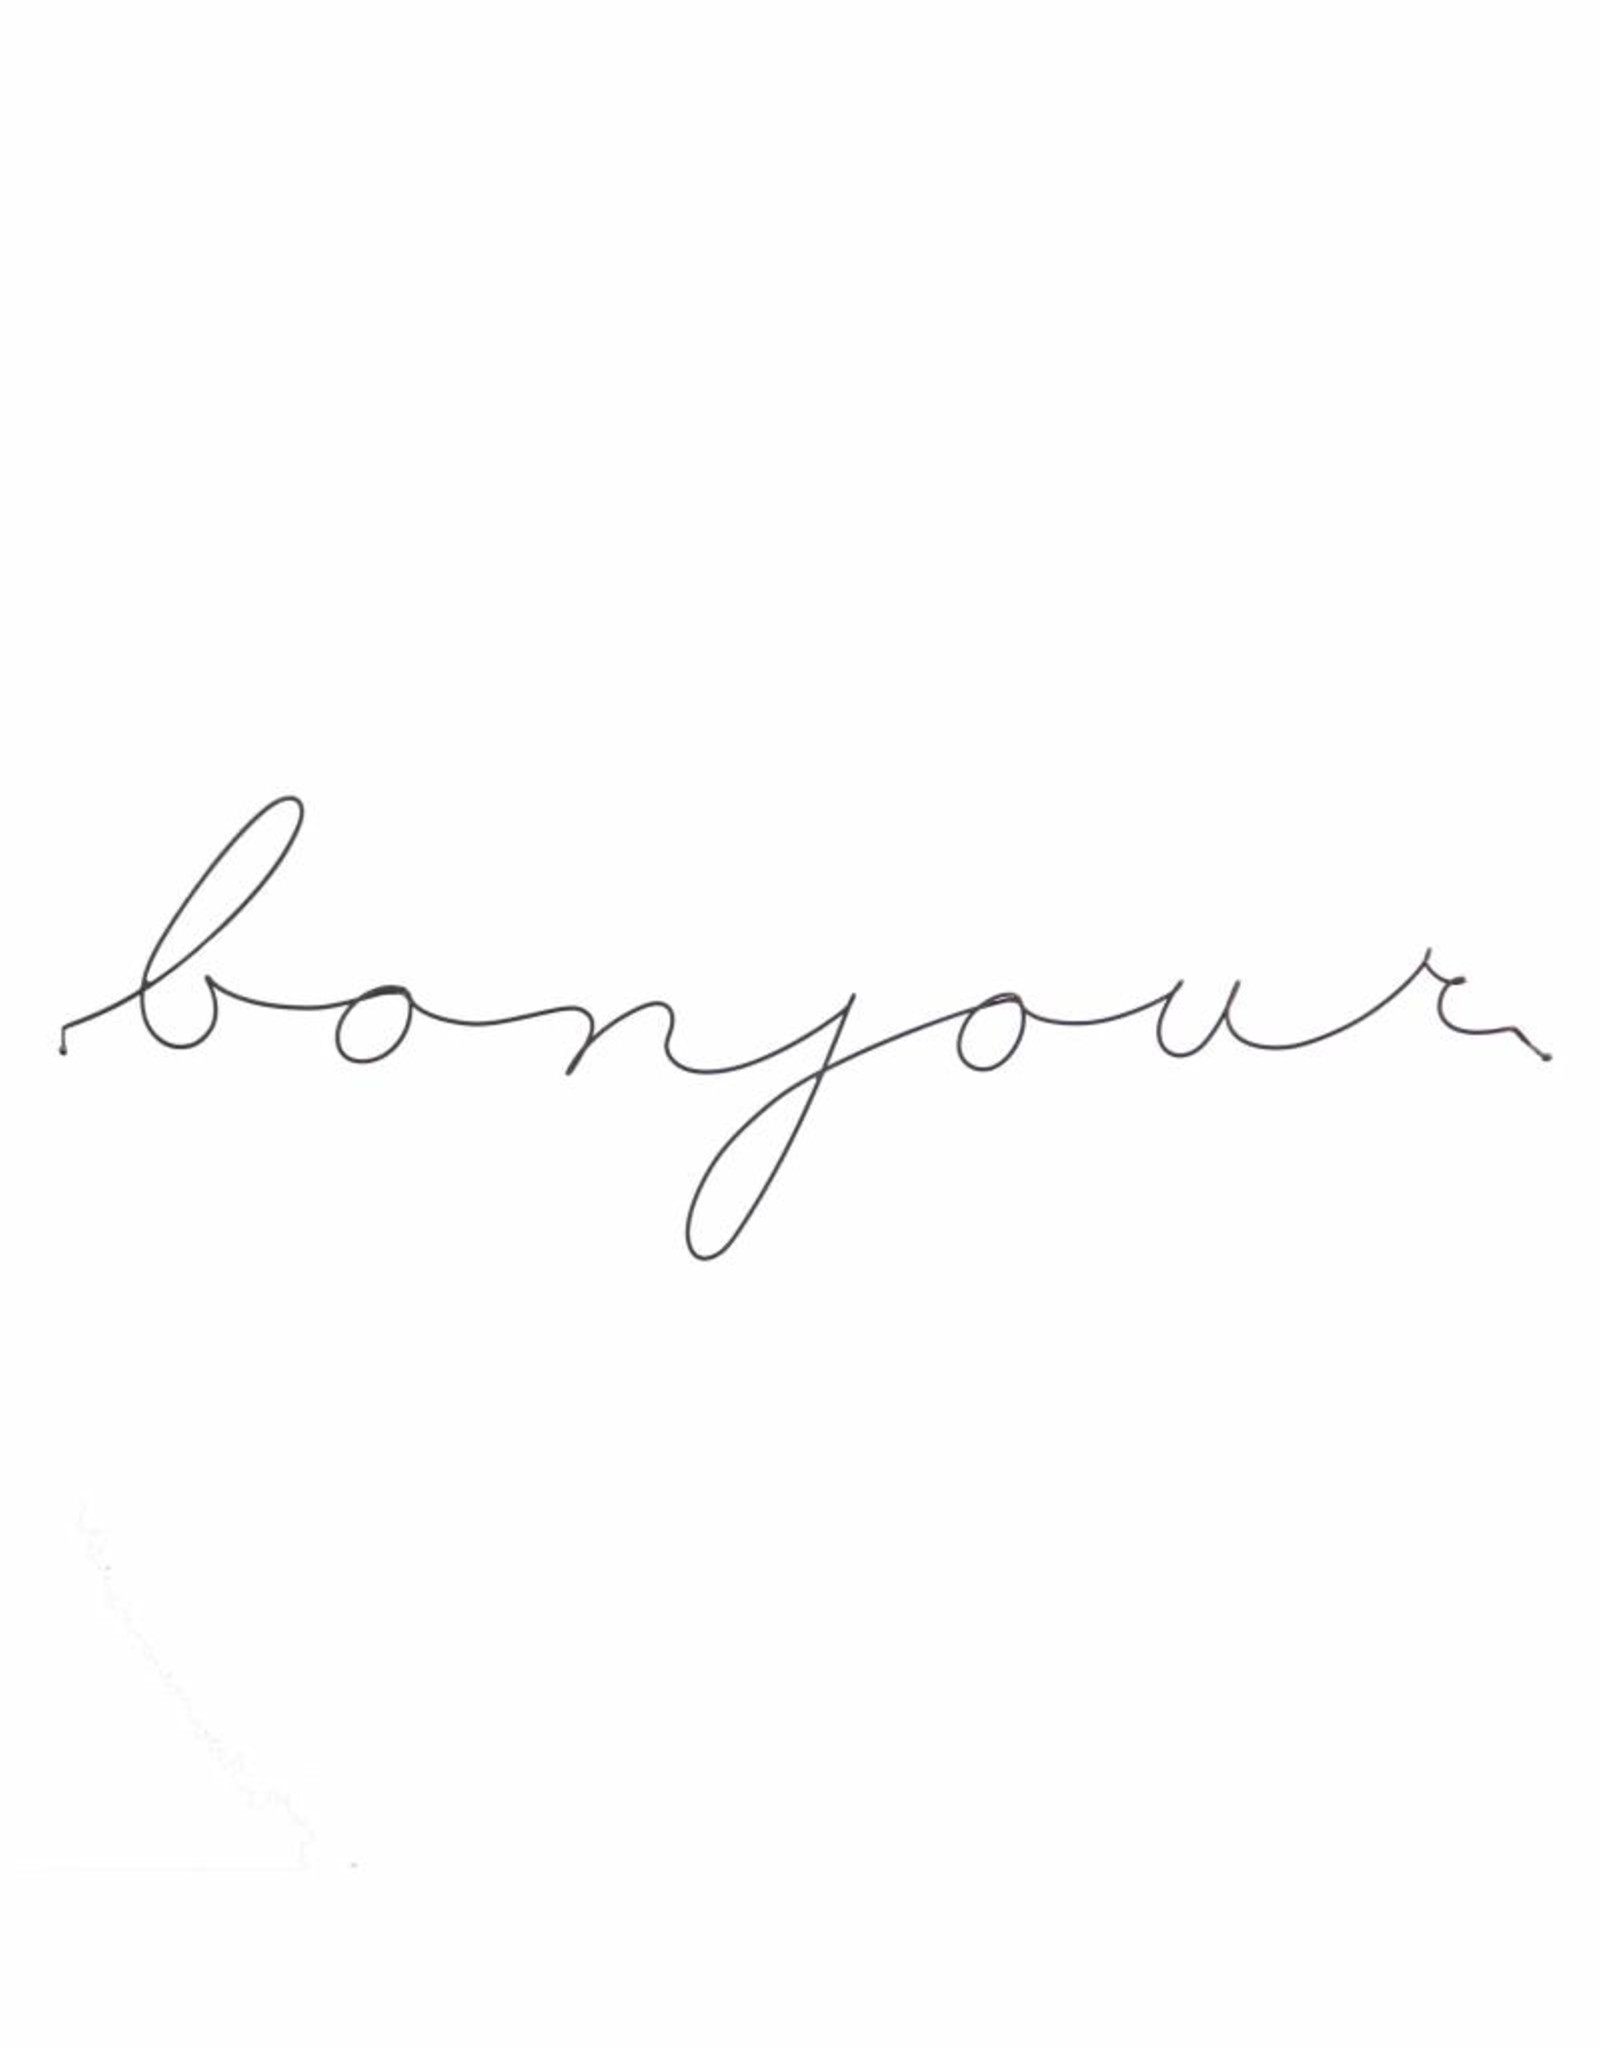 Gauge NYC 'bonjour' Wire Word Poetic